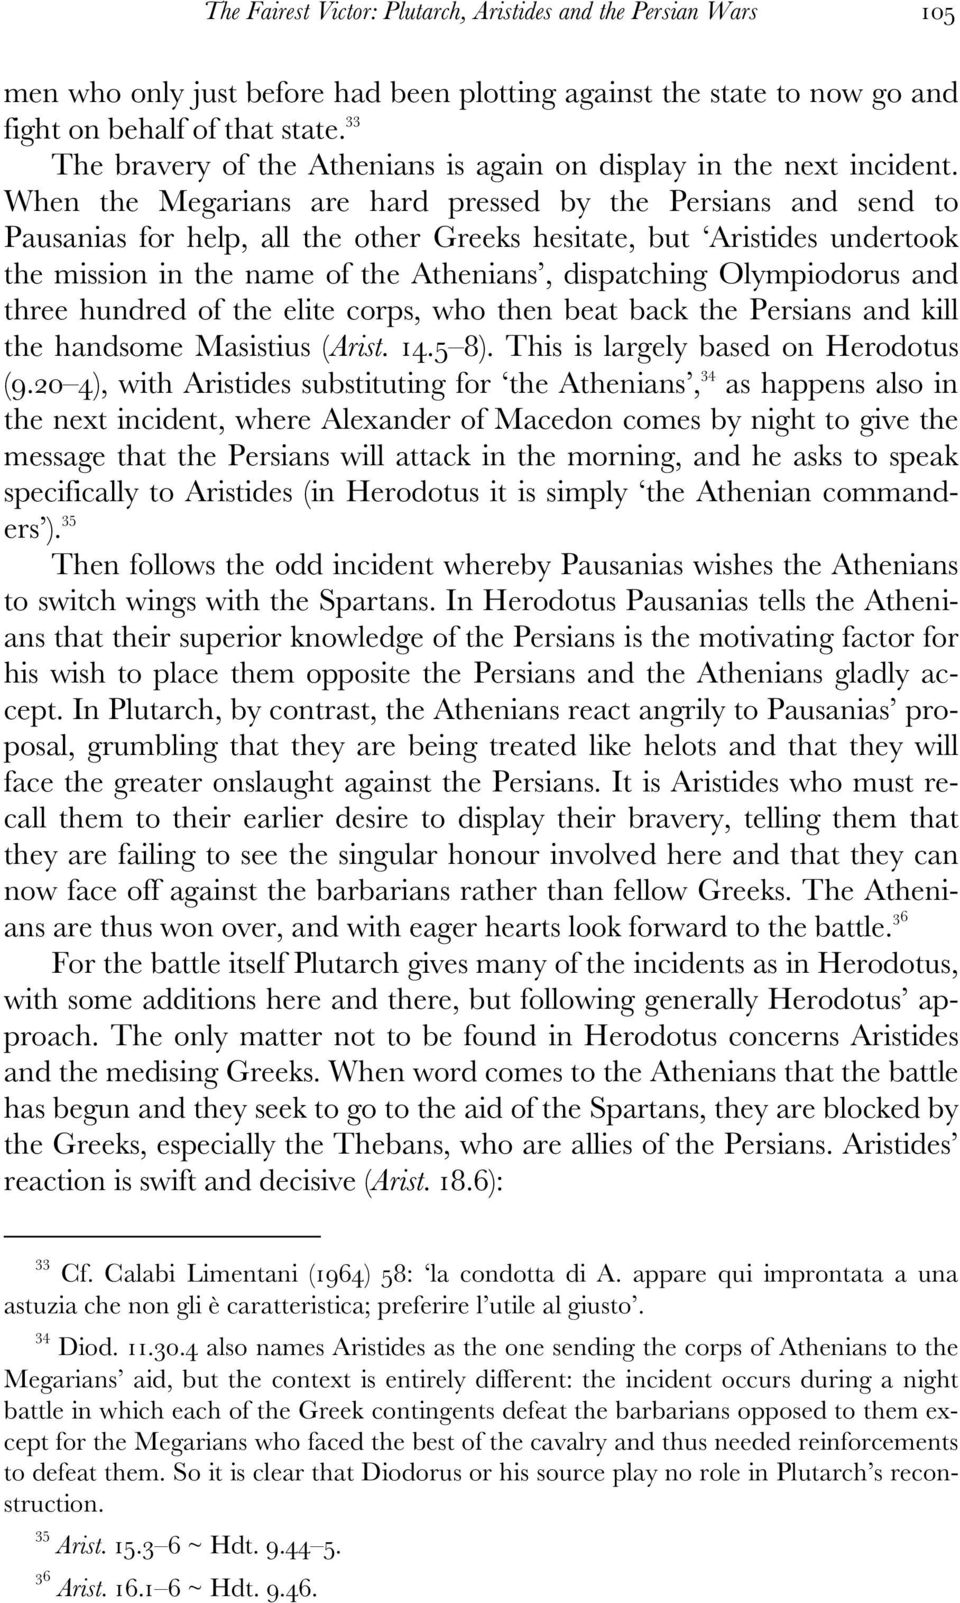 When the Megarians are hard pressed by the Persians and send to Pausanias for help, all the other Greeks hesitate, but Aristides undertook the mission in the name of the Athenians, dispatching